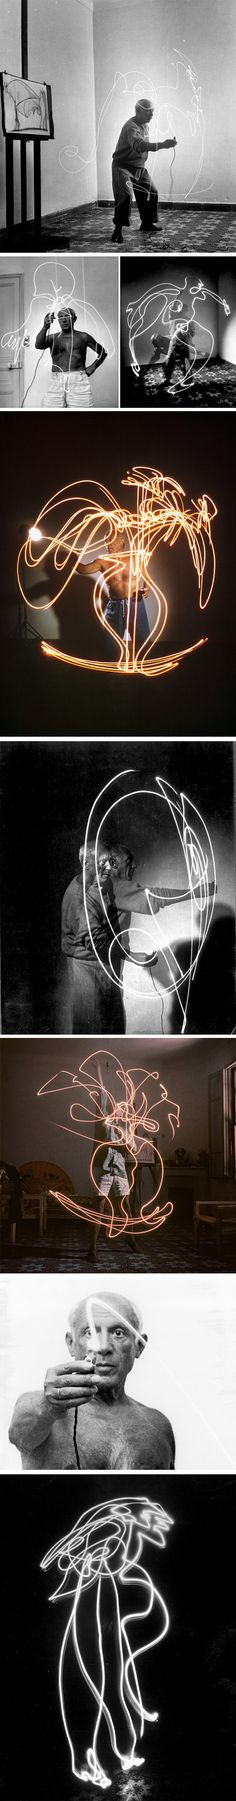 Pablo Picasso's light drawings. what a cool guy.  https://ludovicadigiulio.wixsite.com/designforlove/single-post/2017/08/06/IL-PUNTO-SULLARTE